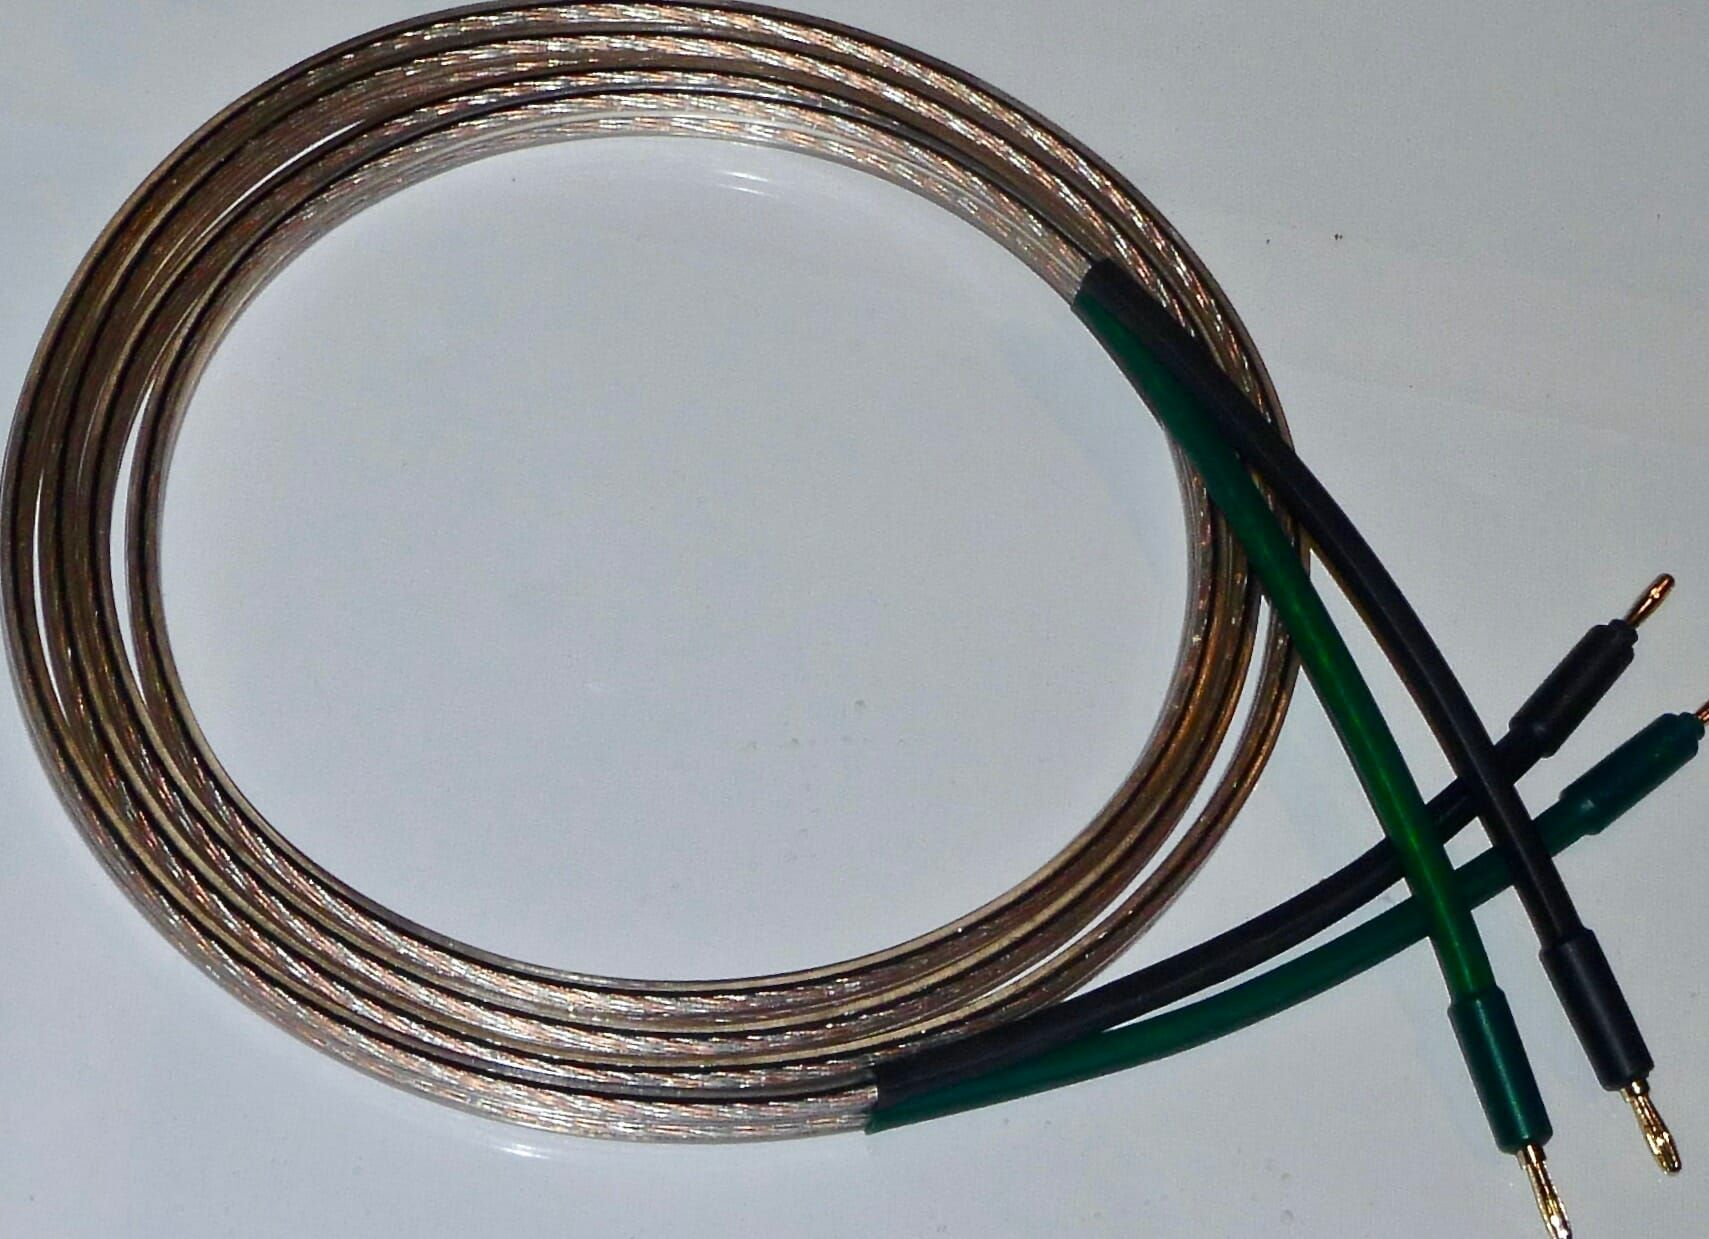 Audiophile cable intro range | Audio | Pinterest | Audiophile and Cable